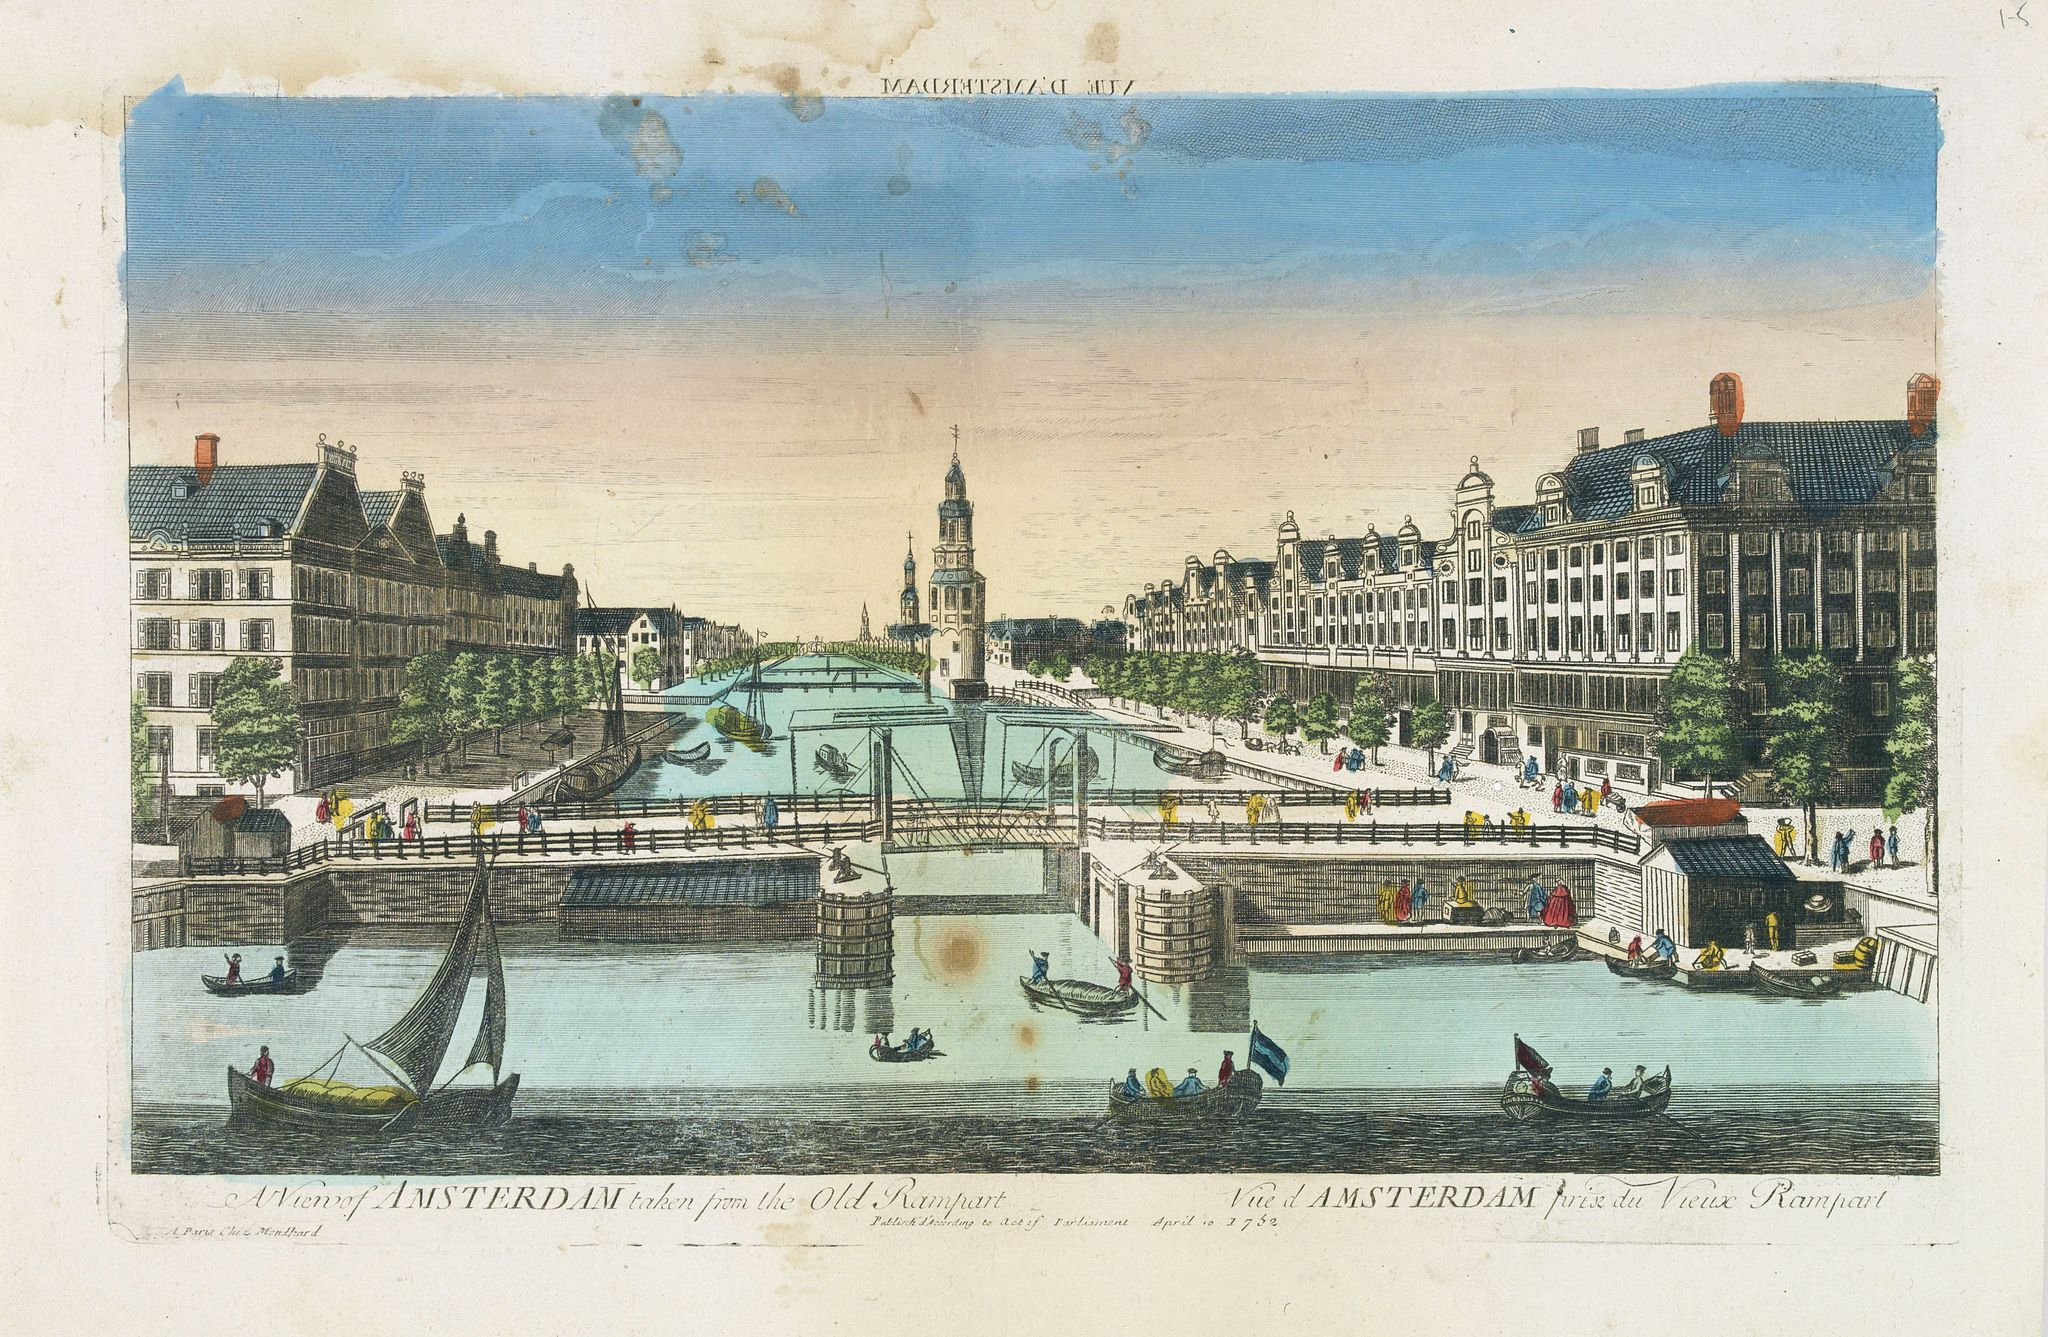 MONDHARE, J. -  A view of Amsterdam taken from the Old Rampart.